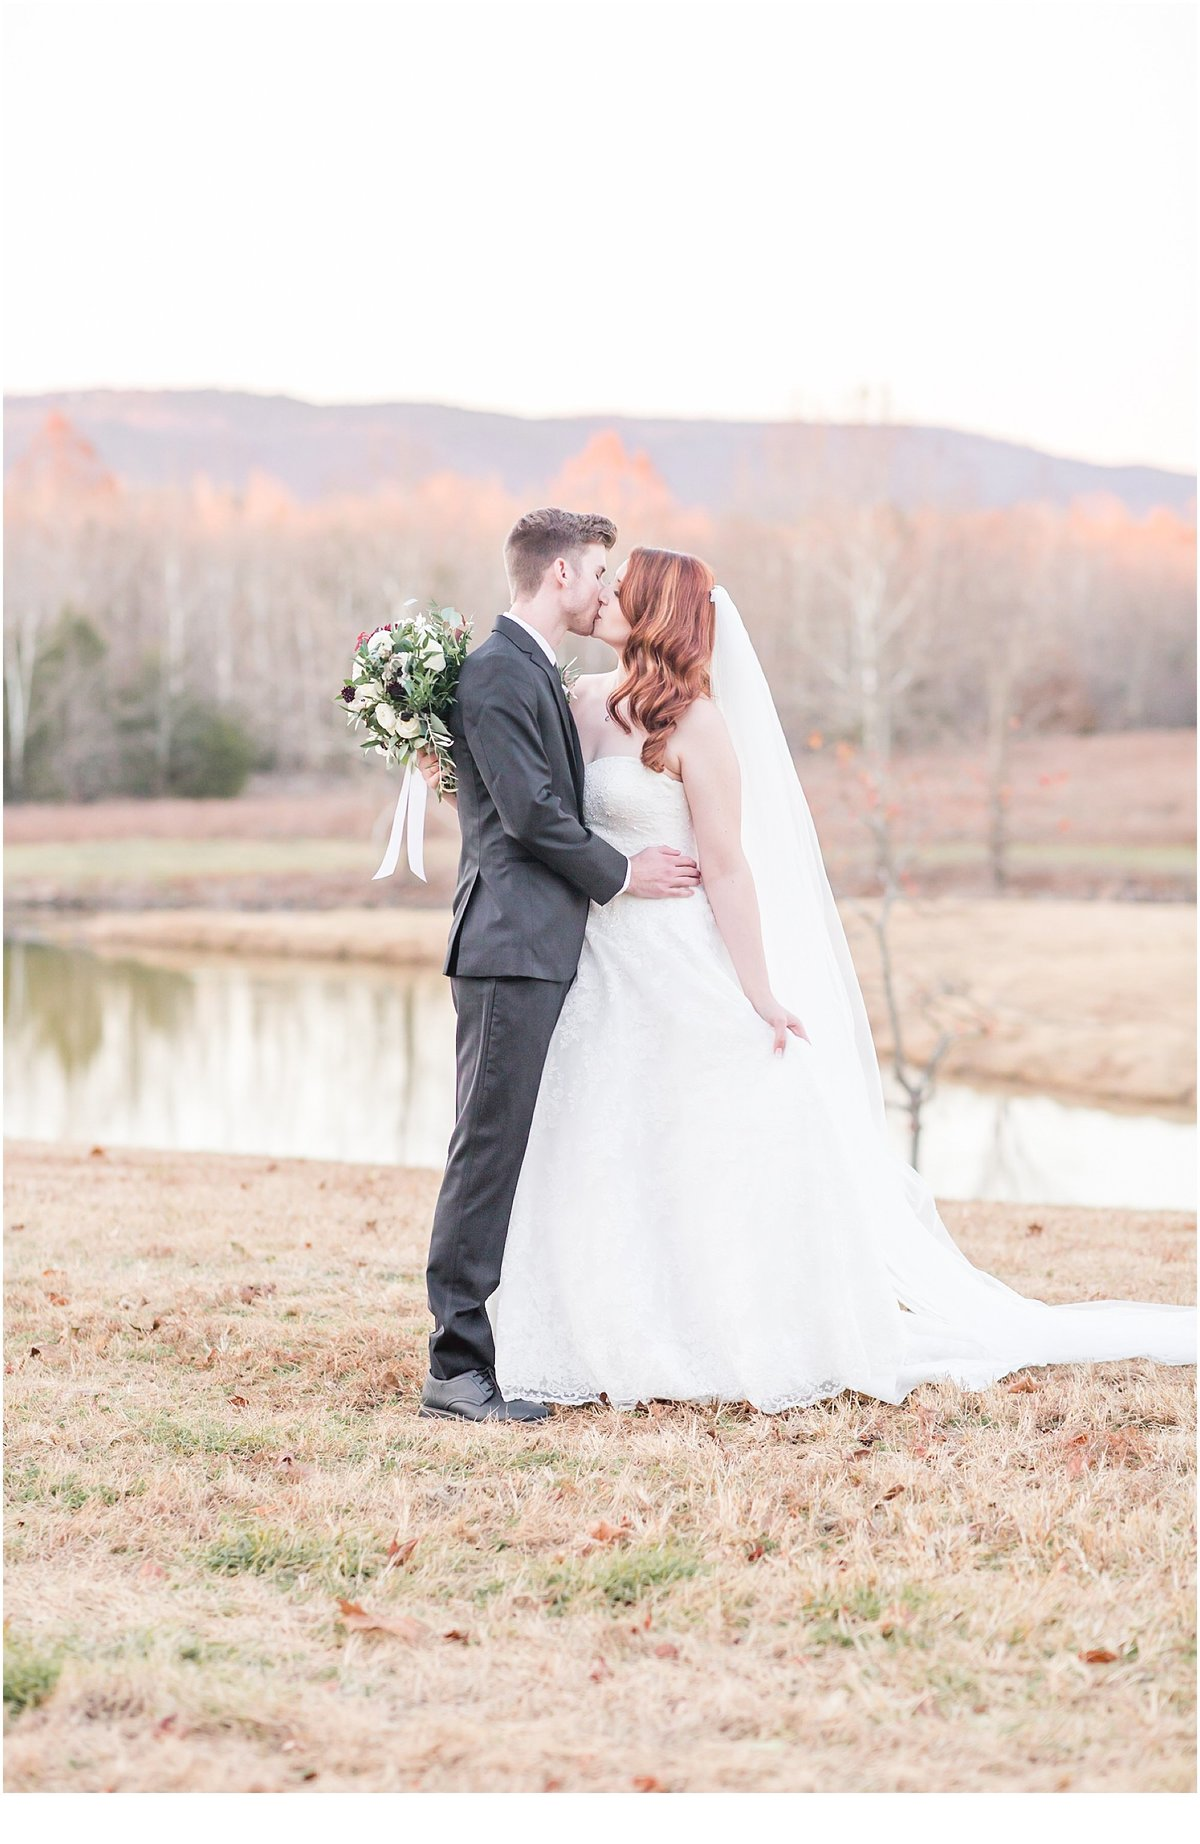 Bride and Groom enjoying romantic kiss  and embrace during their Heritage Acres Farm Wedding Clarksville AR